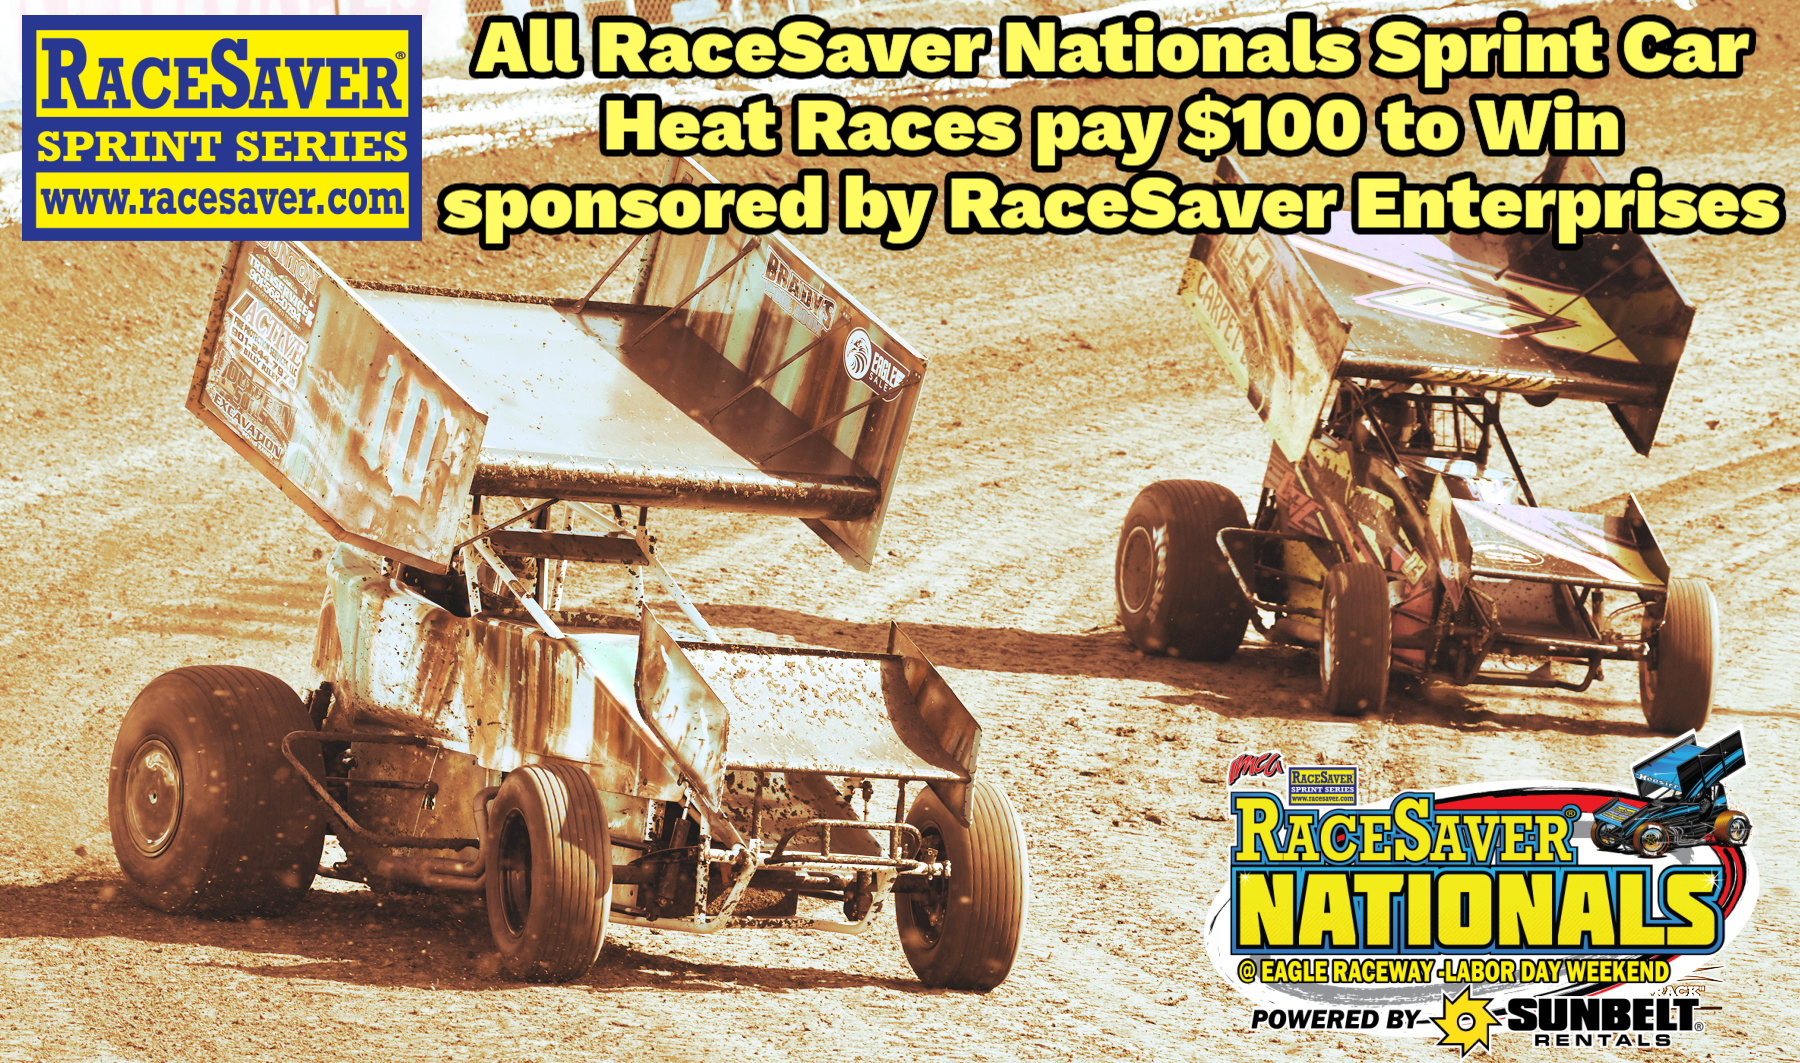 IMCA RaceSaver Nationals Heat Races at Eagle Raceway will now pay $100 to win.